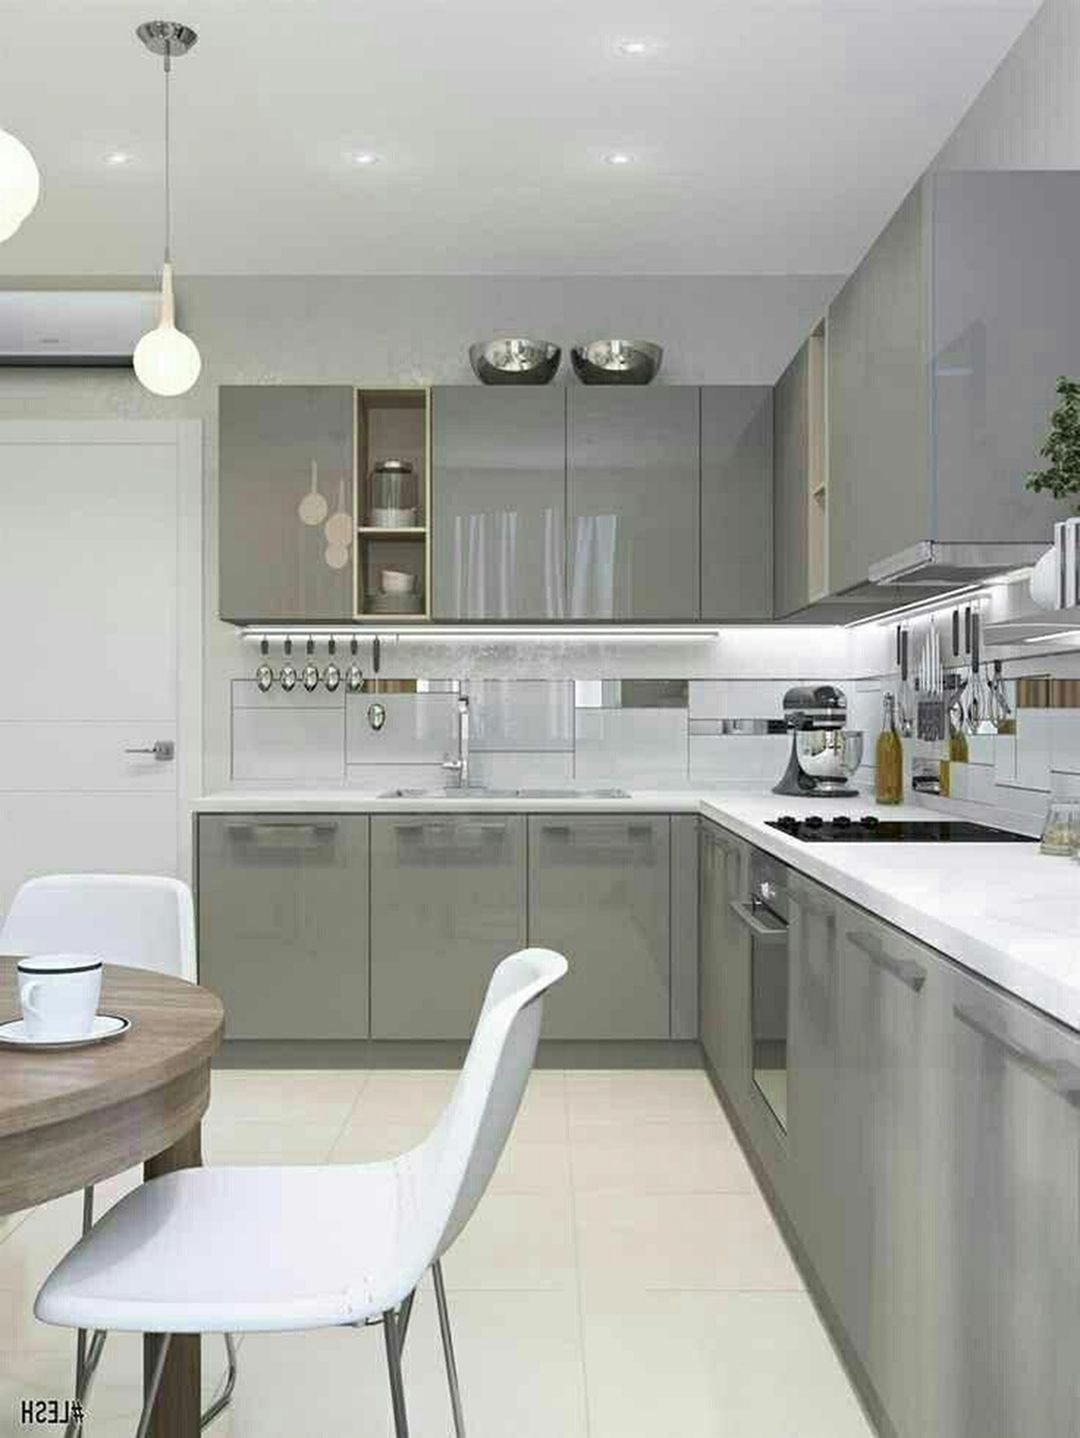 25 Brilliant Small Apartment Kitchen Design Ideas For More Comfort With Images Small Kitchen Design Apartment Small Apartment Kitchen Kitchen Room Design